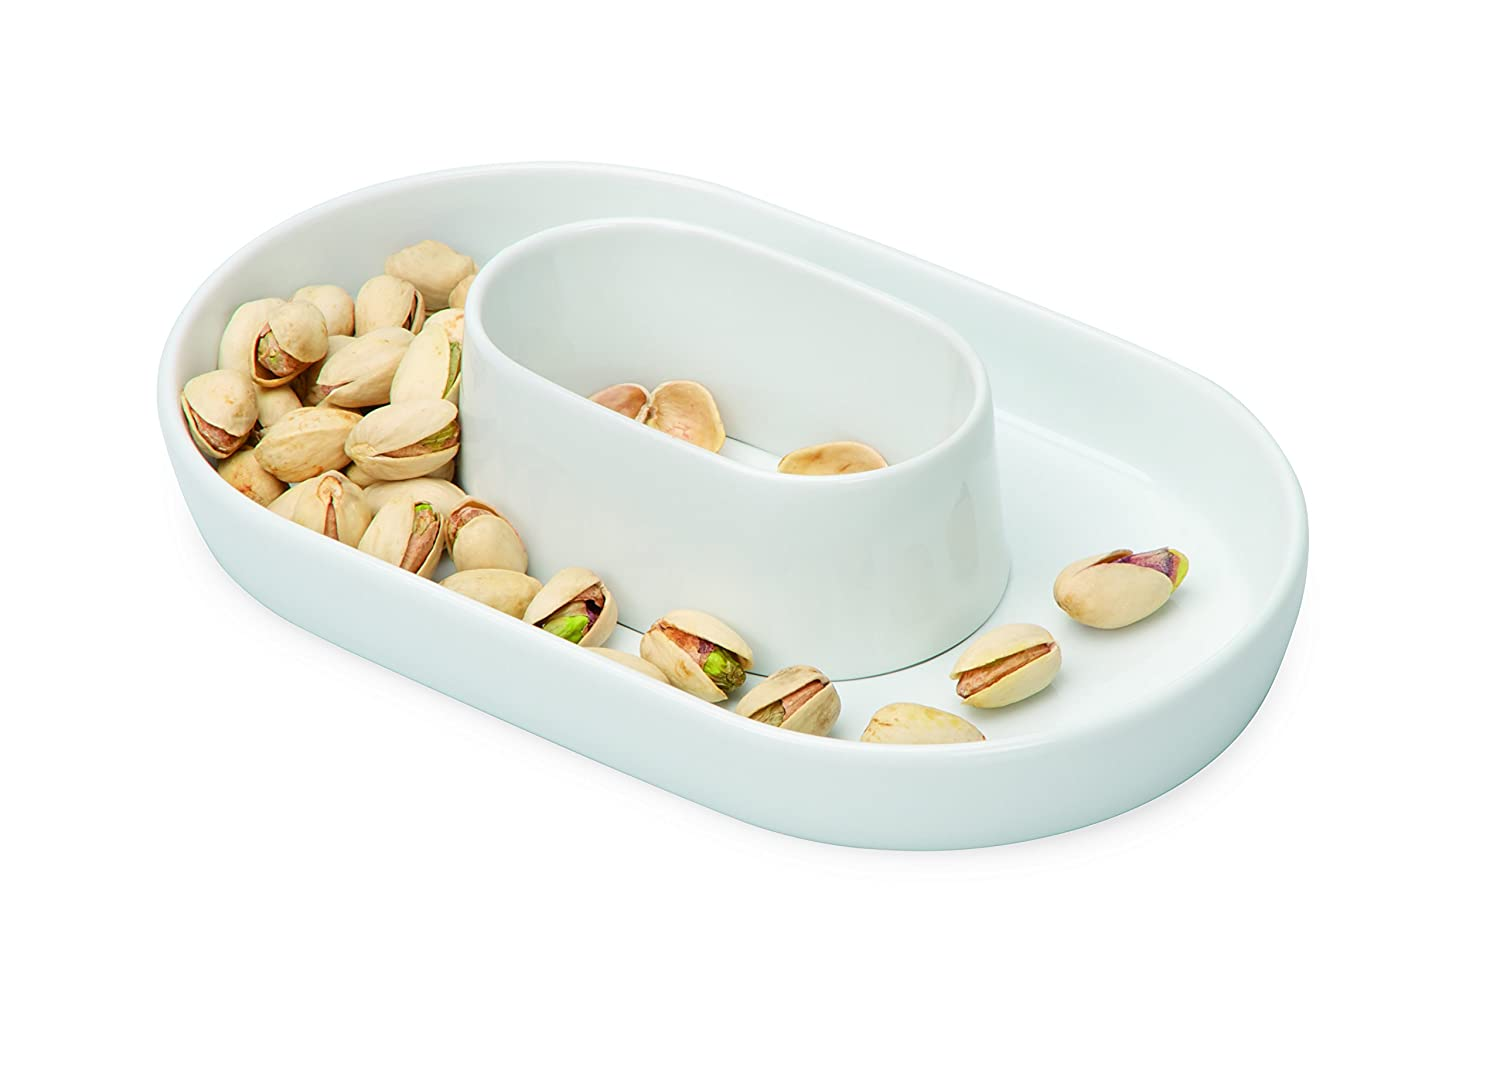 Universal Expert Nut and Olive Dish KitchenCenter 16013